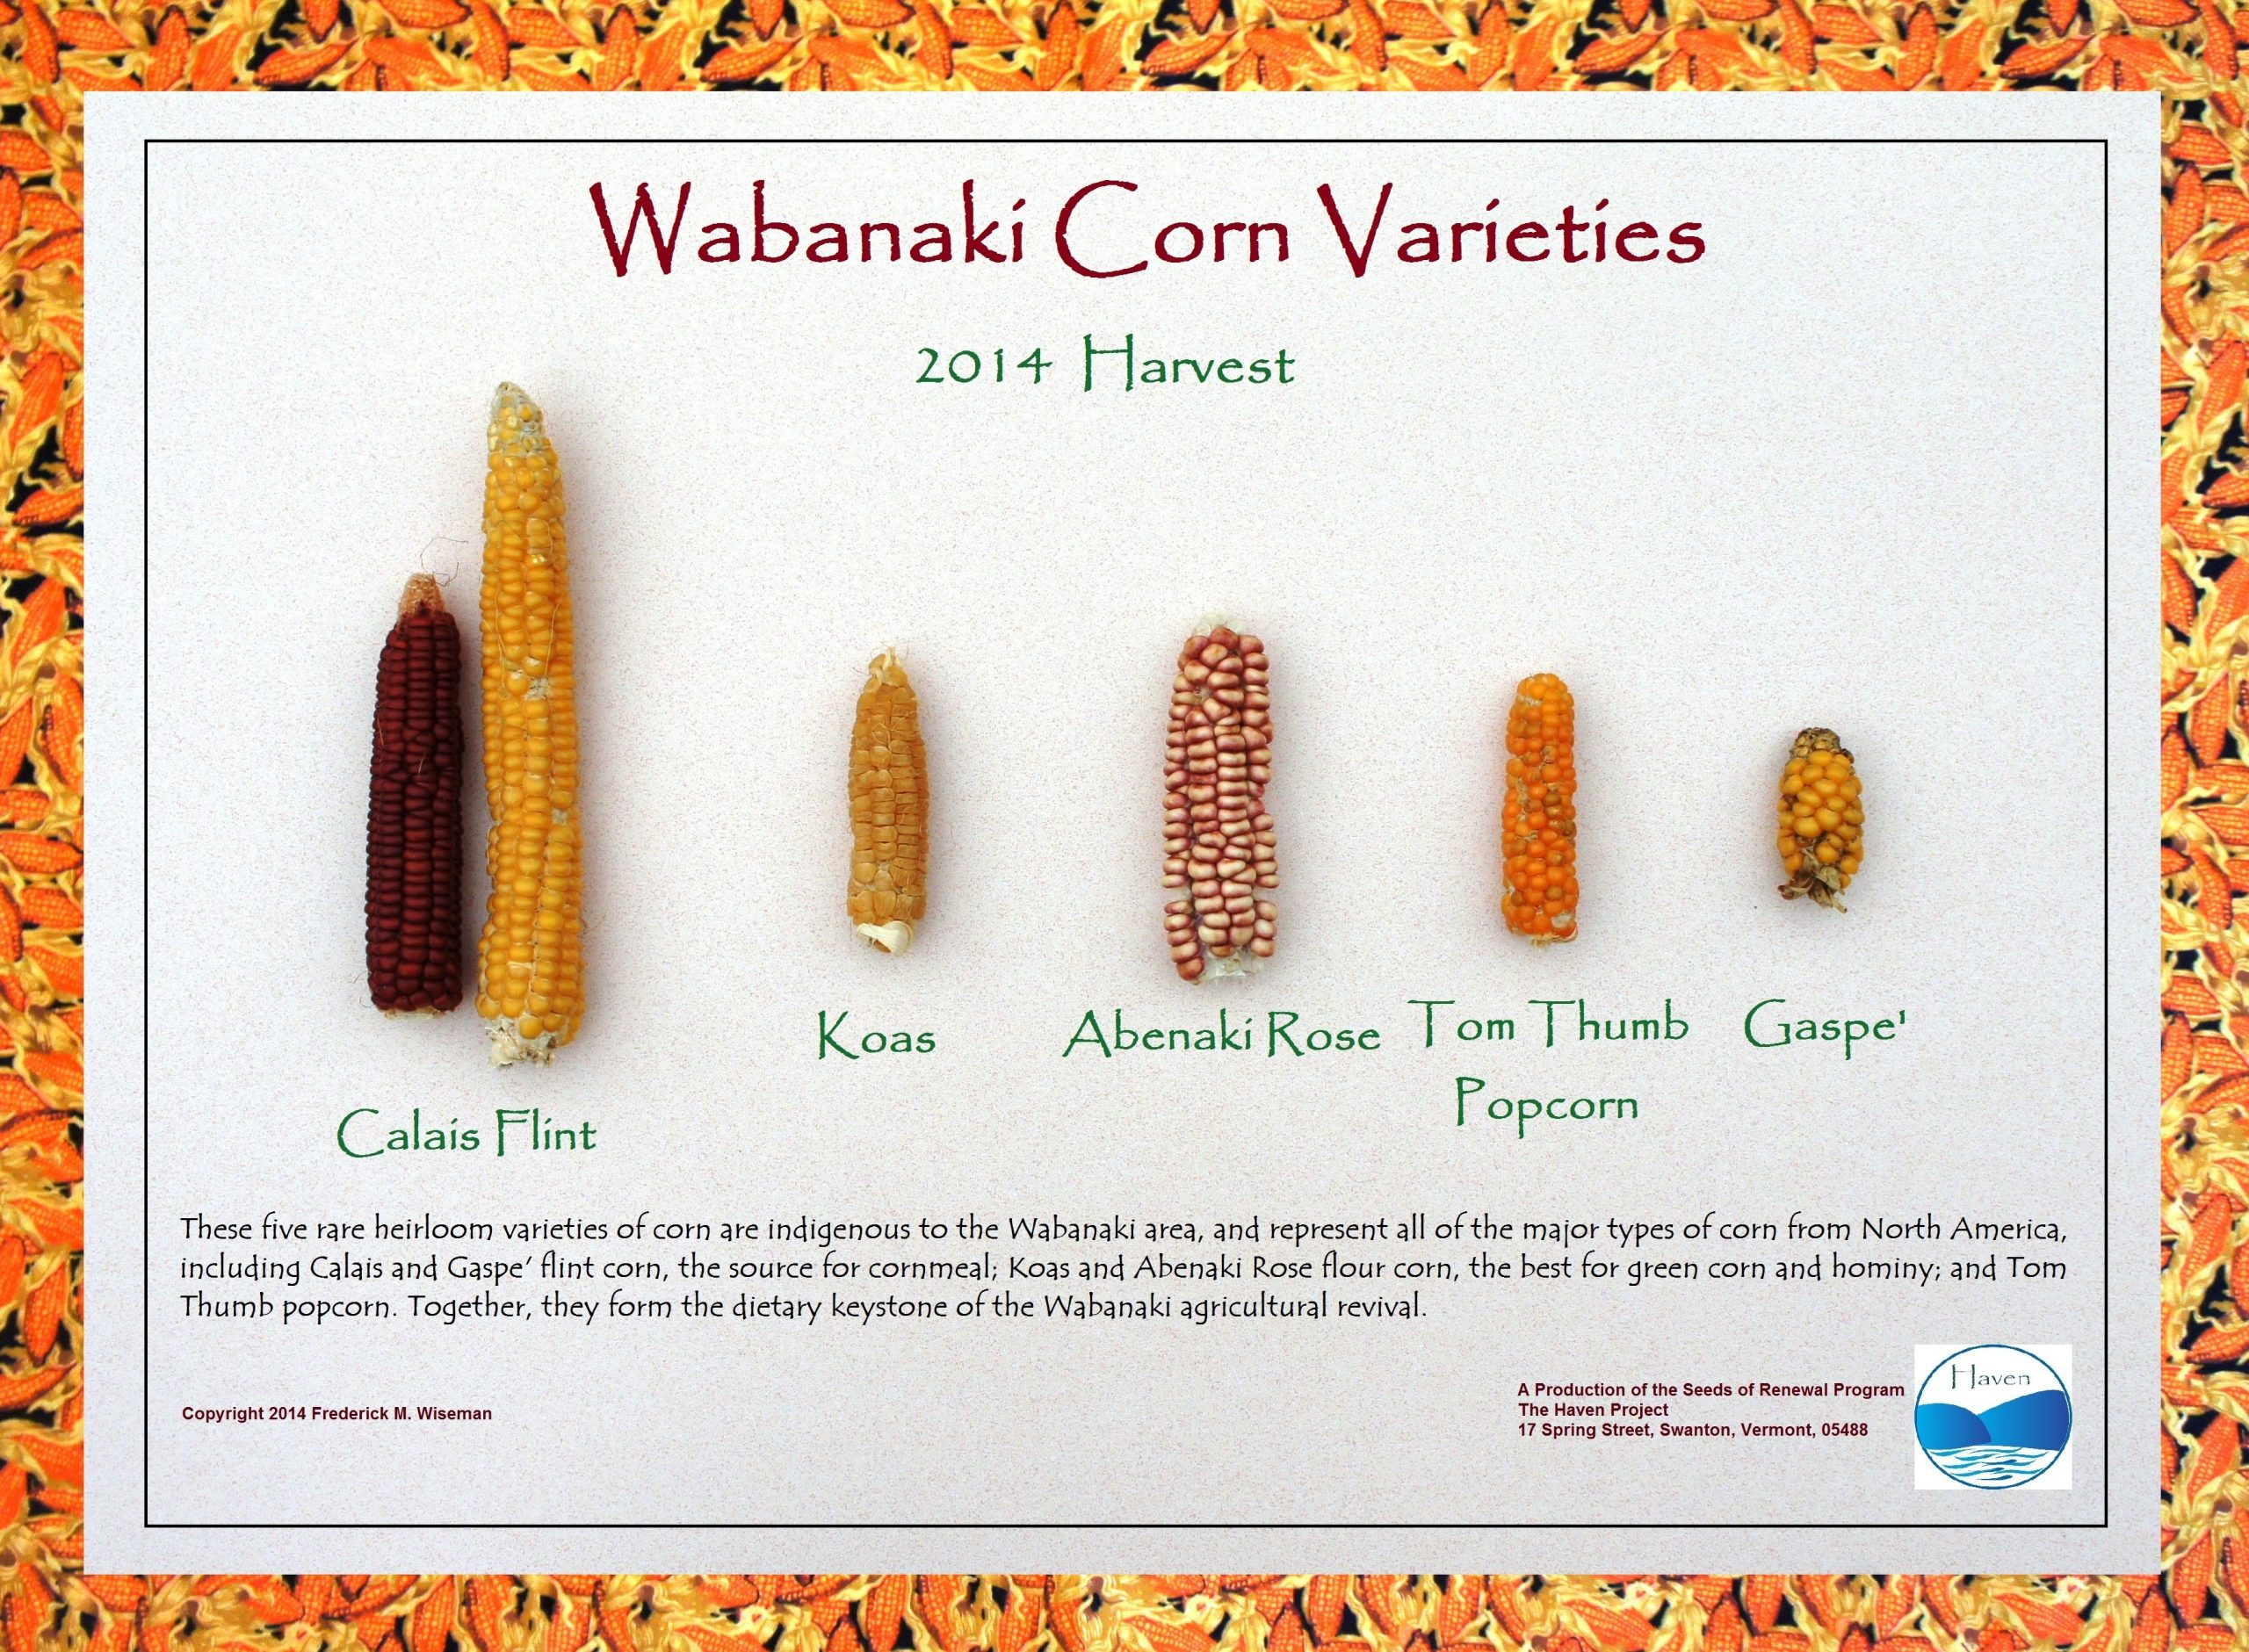 Wabanaki Corn Varieties: 2014 Harvest